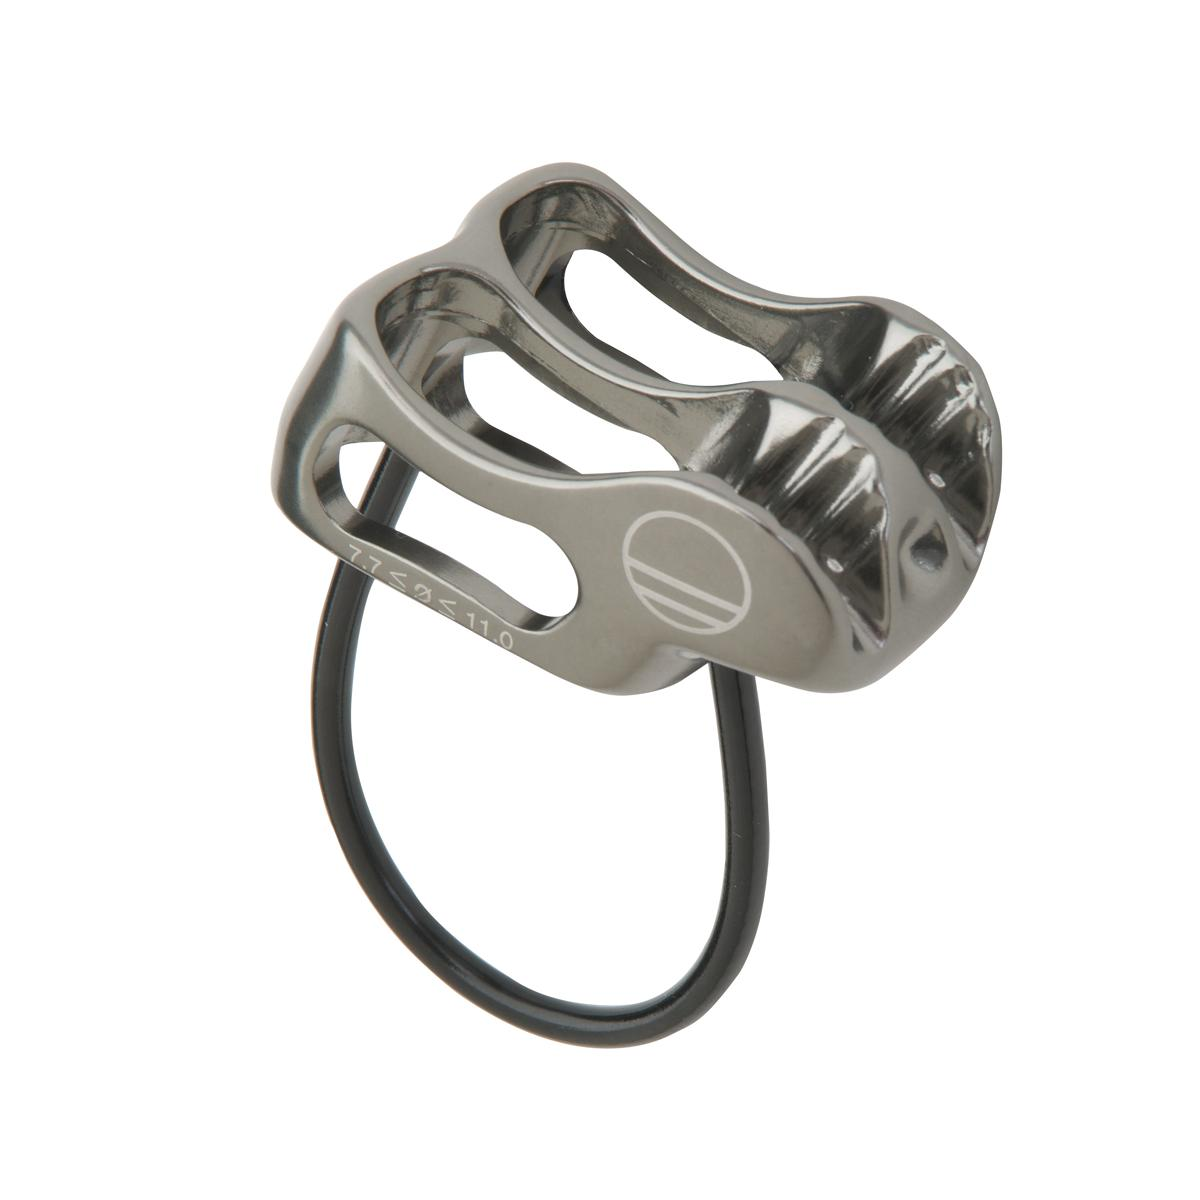 Wild Country Pro Lite Belay-Rappel Device